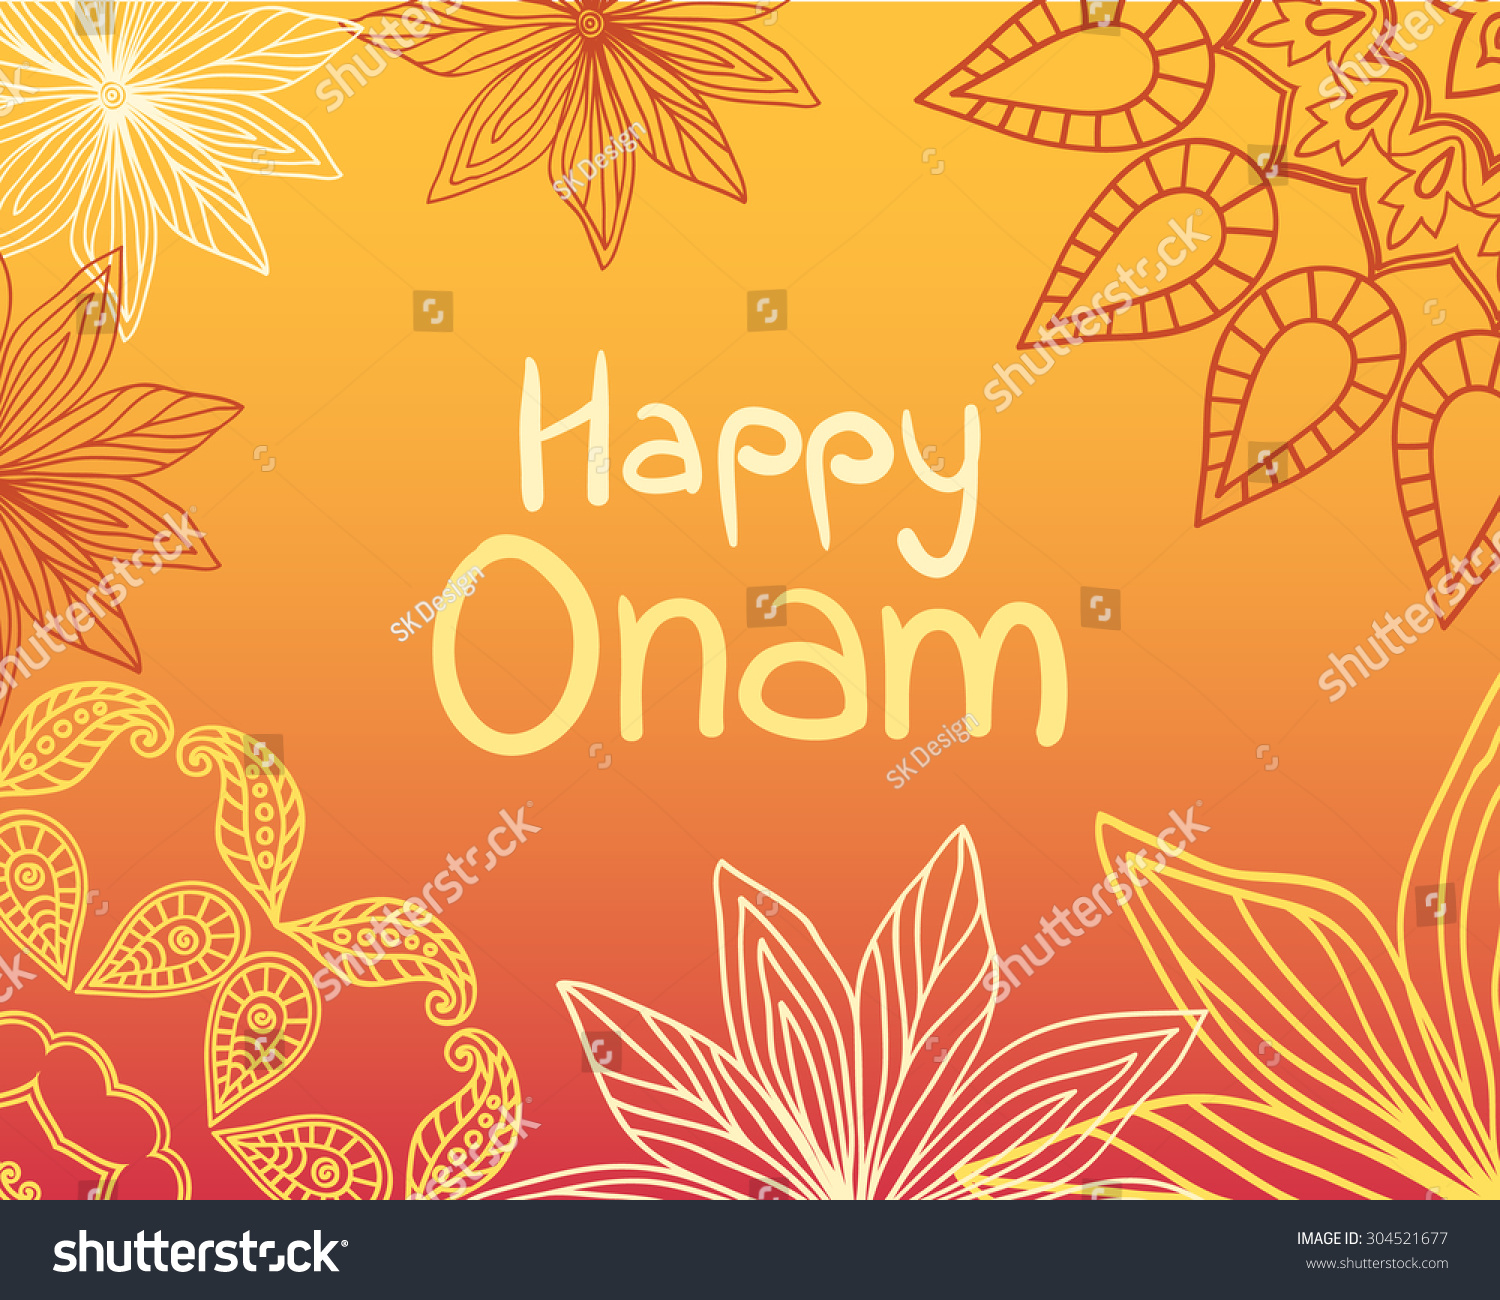 Happy onam greeting card indian festival stock illustration happy onam greeting card indian festival celebration beautiful floral vintage decoration in mehndi style kristyandbryce Image collections